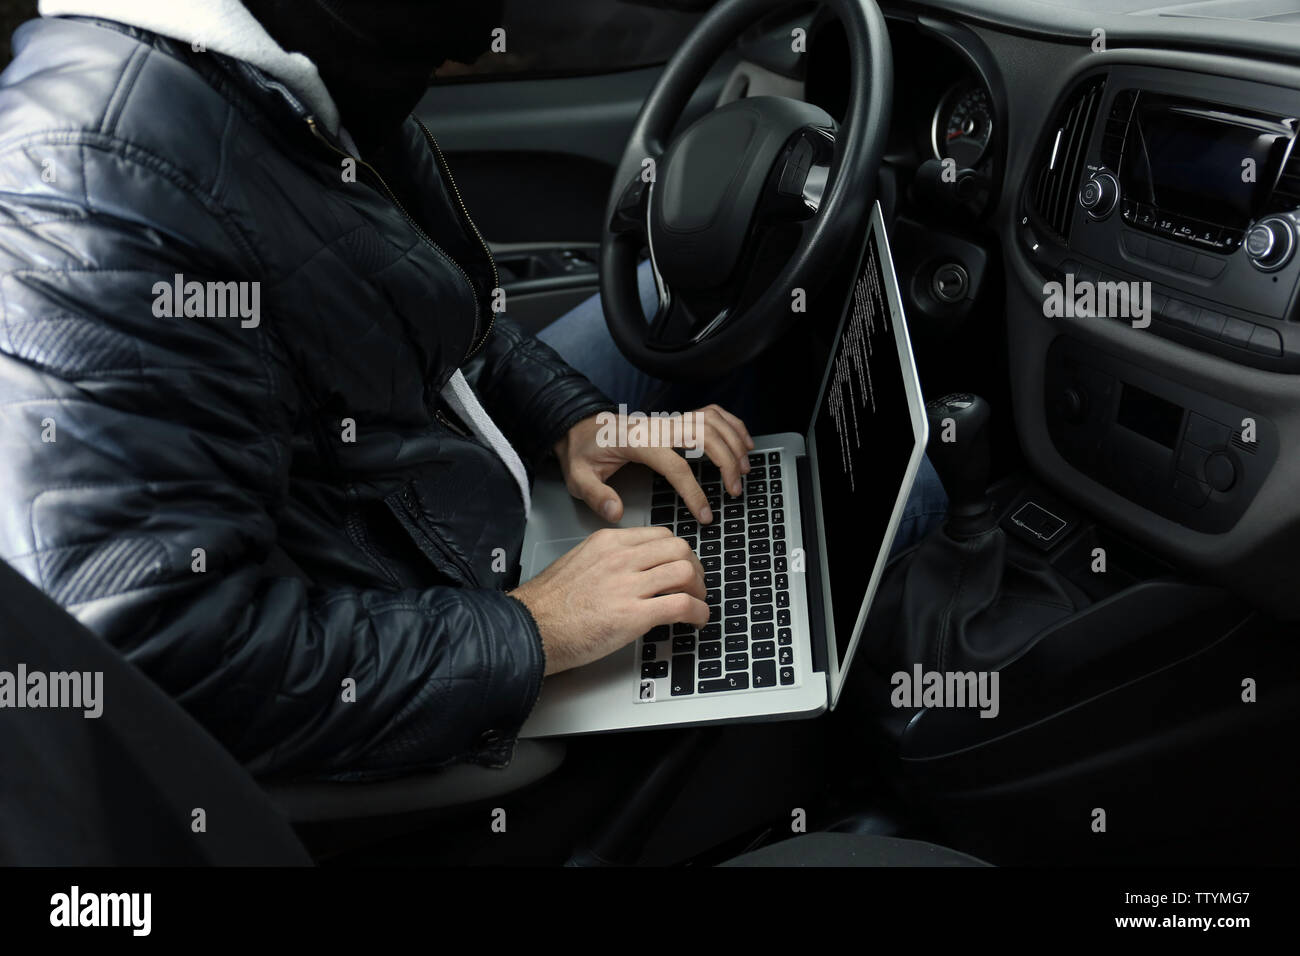 Car thief hacking security systems with laptop computer - Stock Image